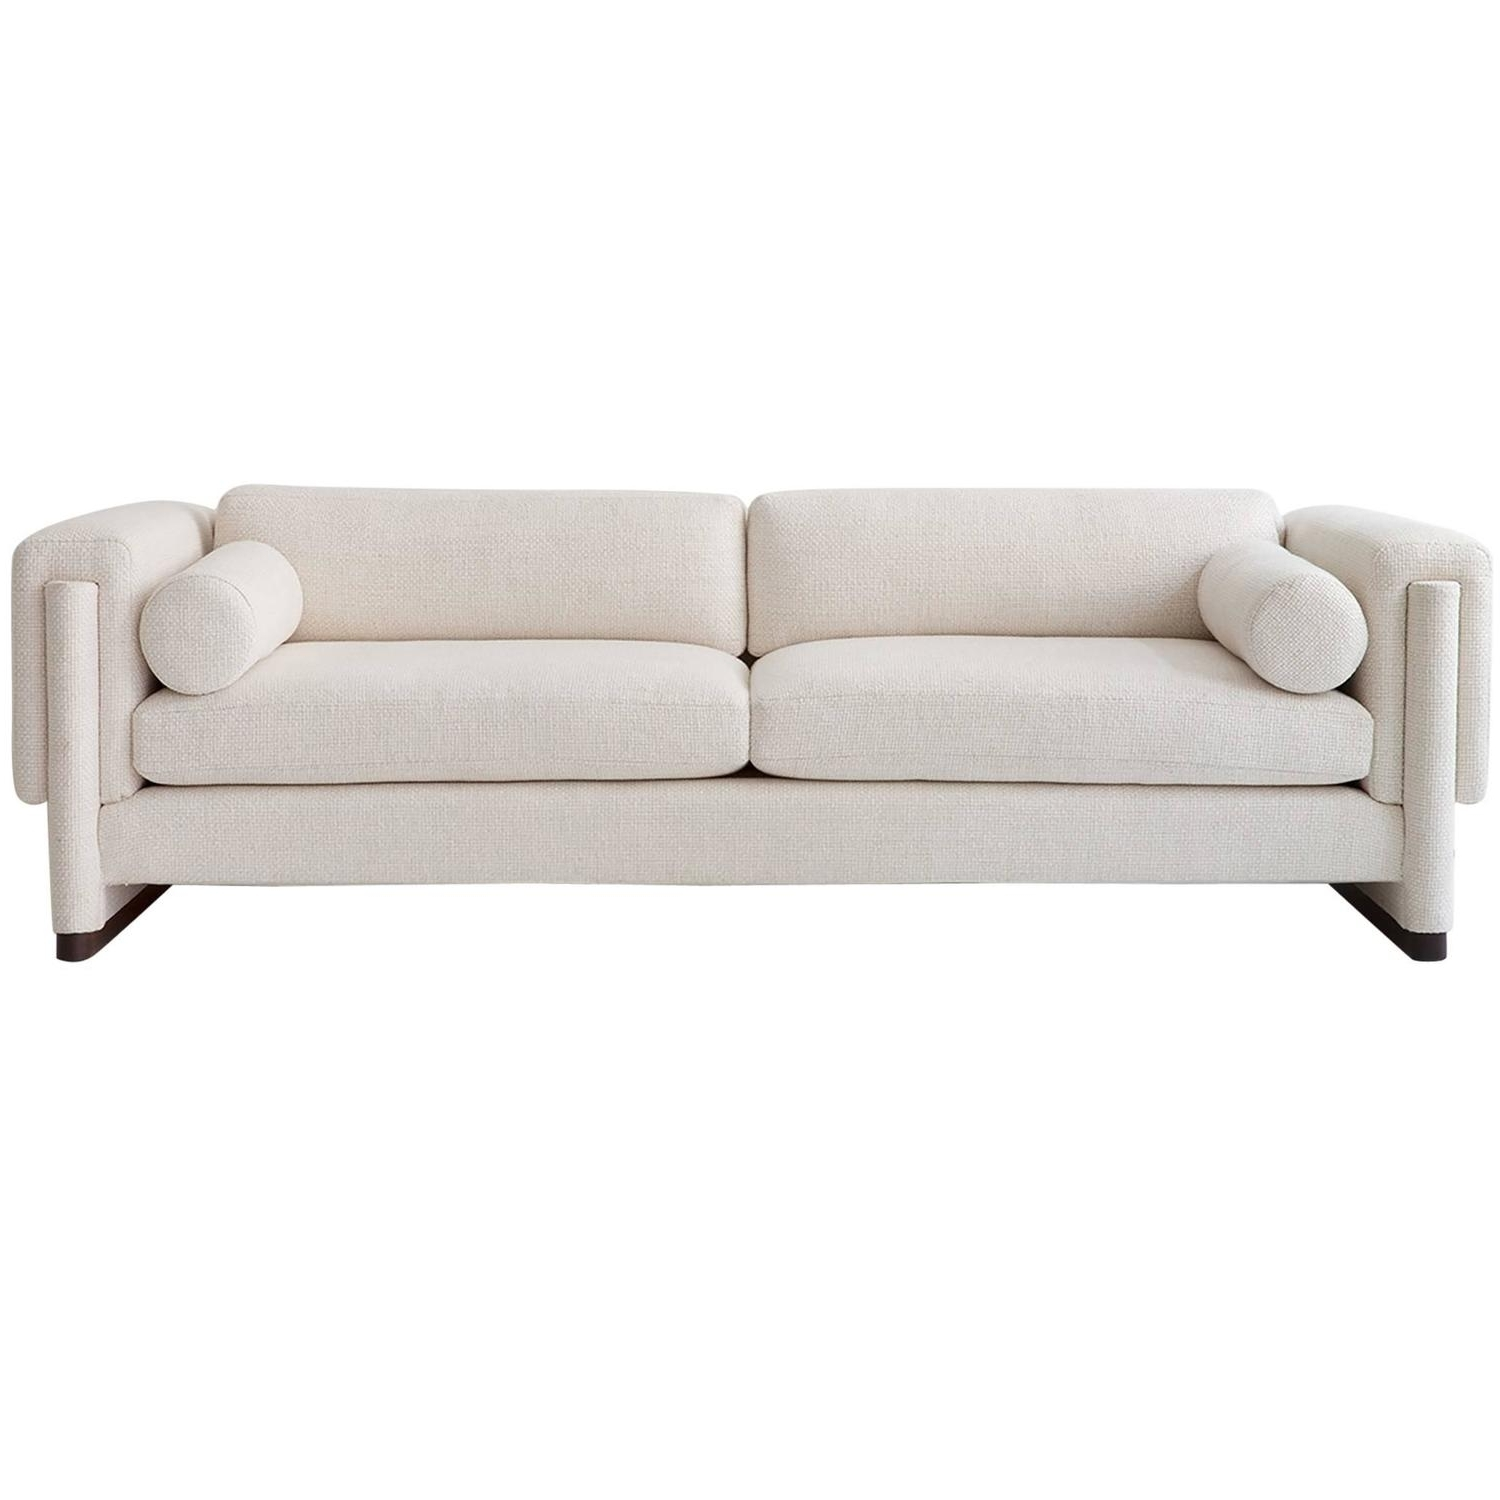 Fashionable Art Deco Sofas – 130 For Sale At 1Stdibs With Art Deco Sofas (View 7 of 15)